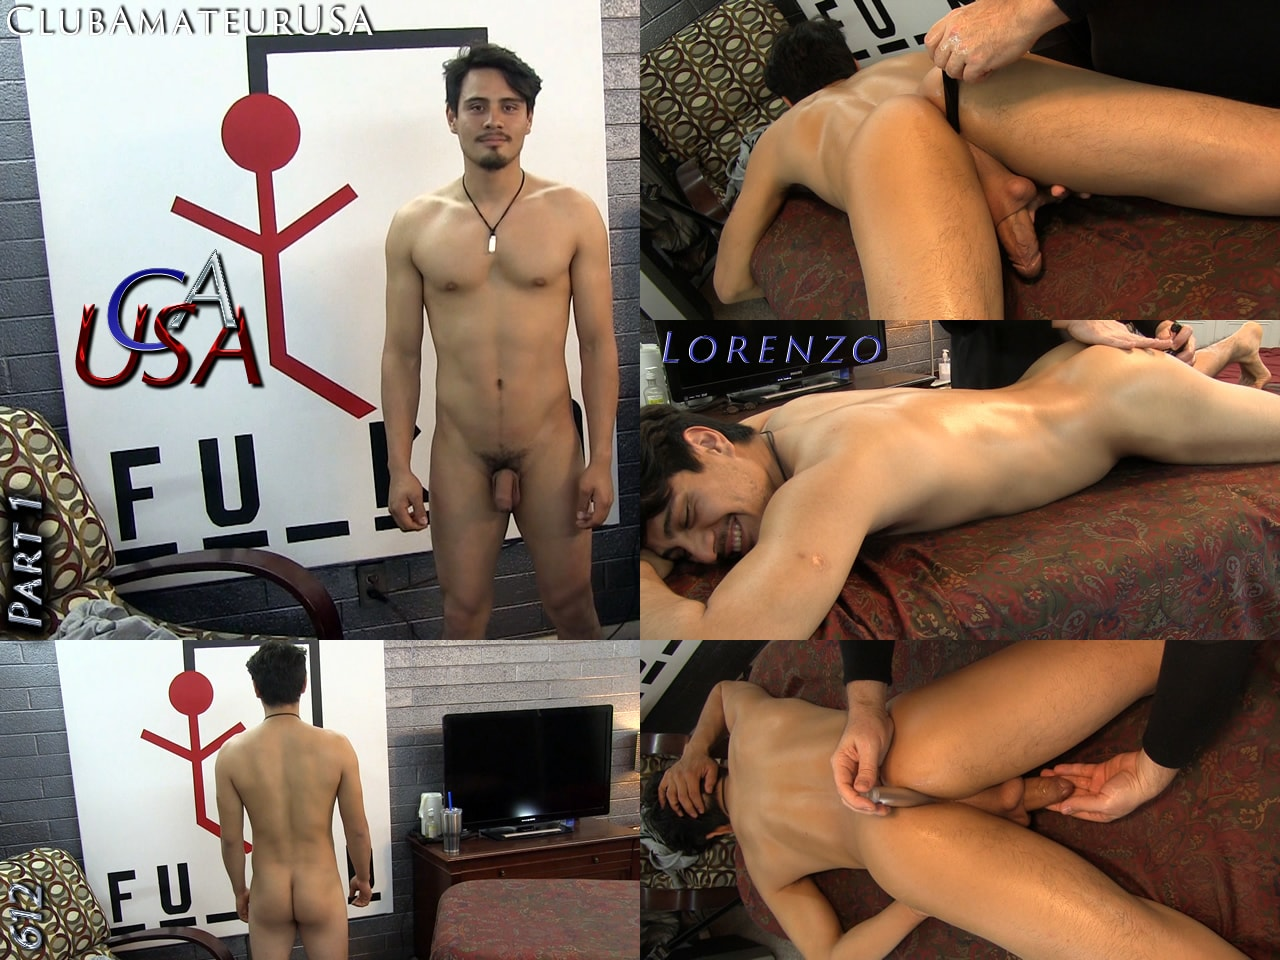 Download or Stream CAUSA 612 Lorenzo - Part 1 - Click Here Now